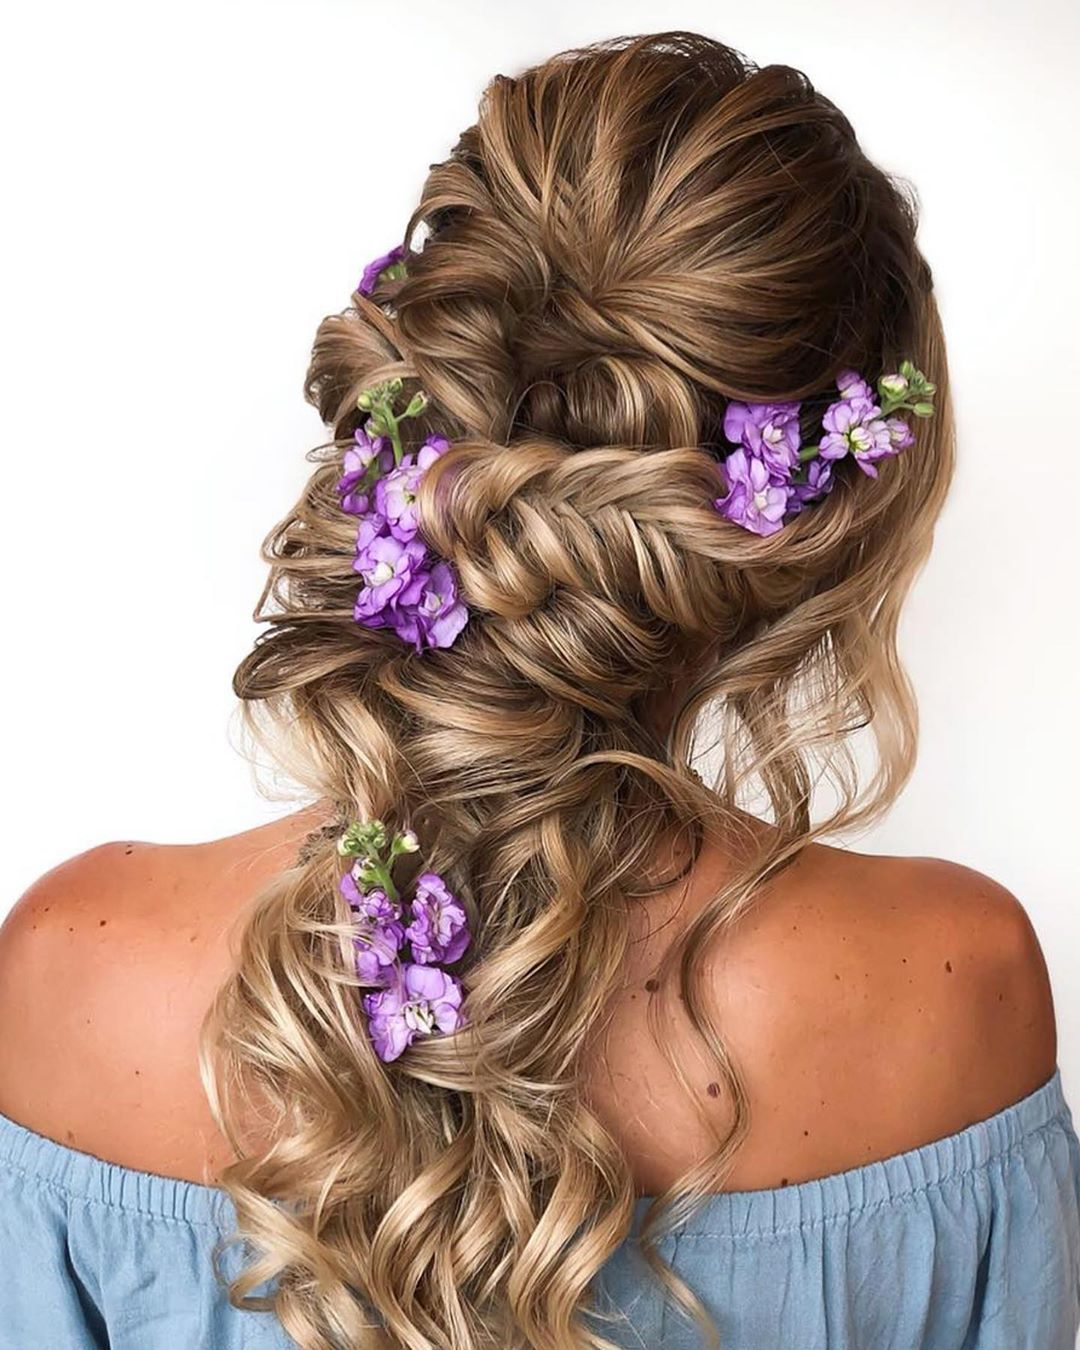 Cute Summer Hairstyle with Flowers